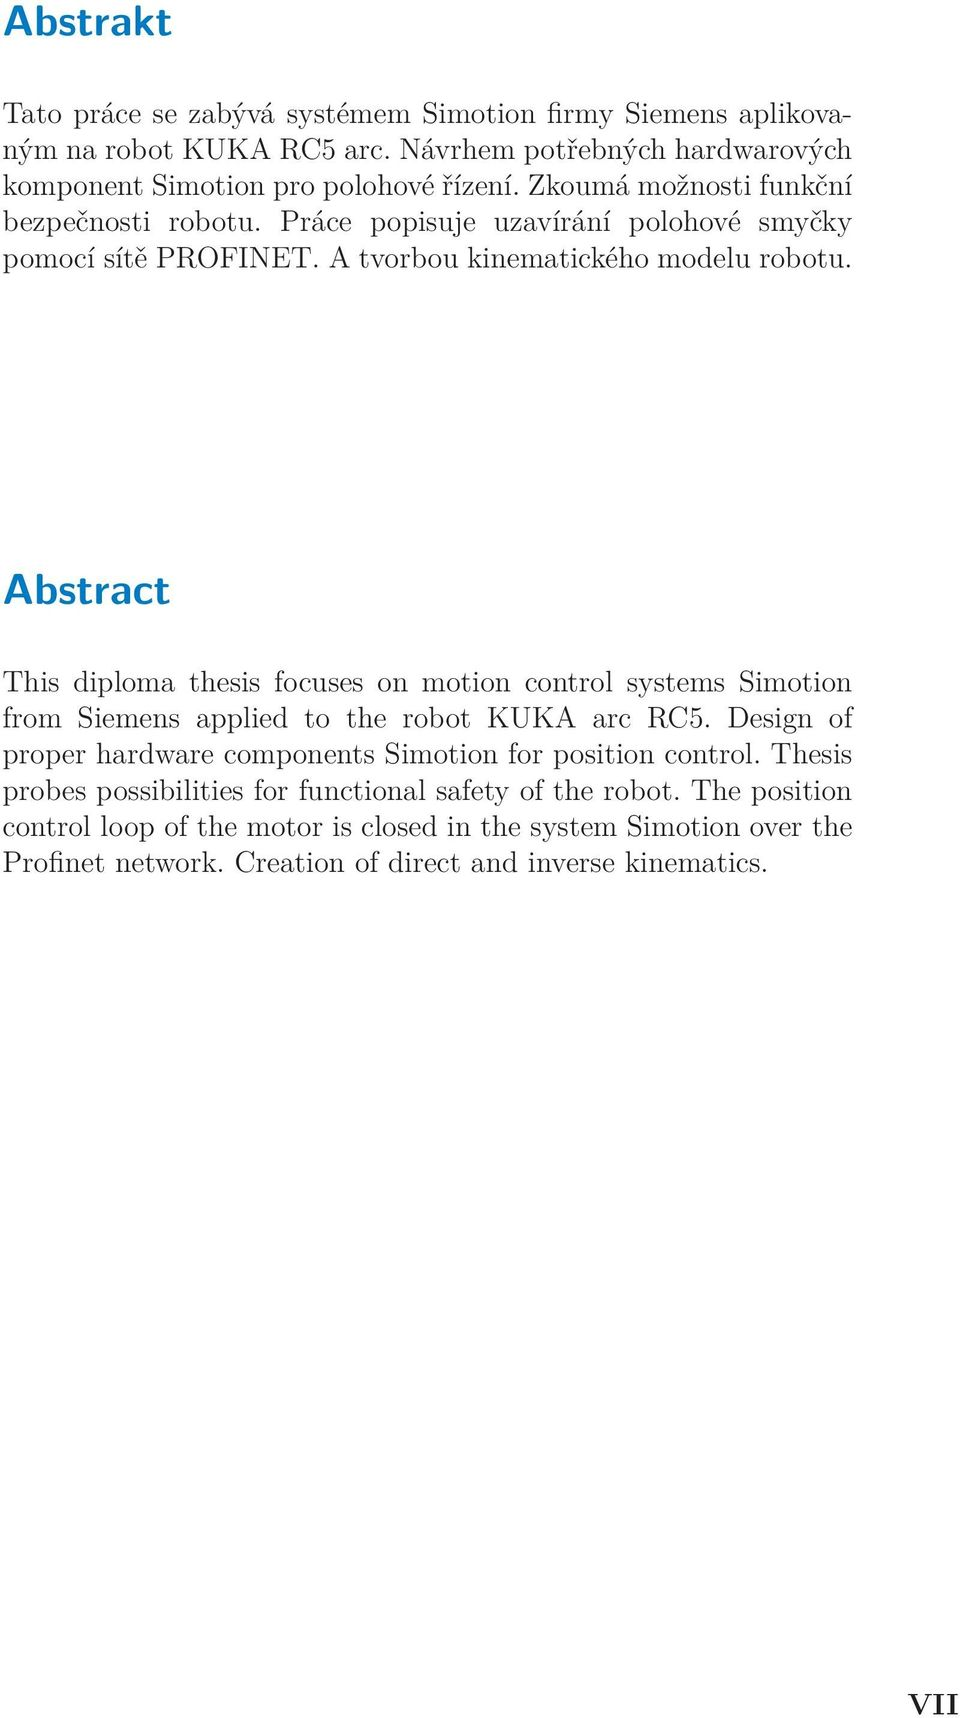 Abstract This diploma thesis focuses on motion control systems Simotion from Siemens applied to the robot KUKA arc RC5.